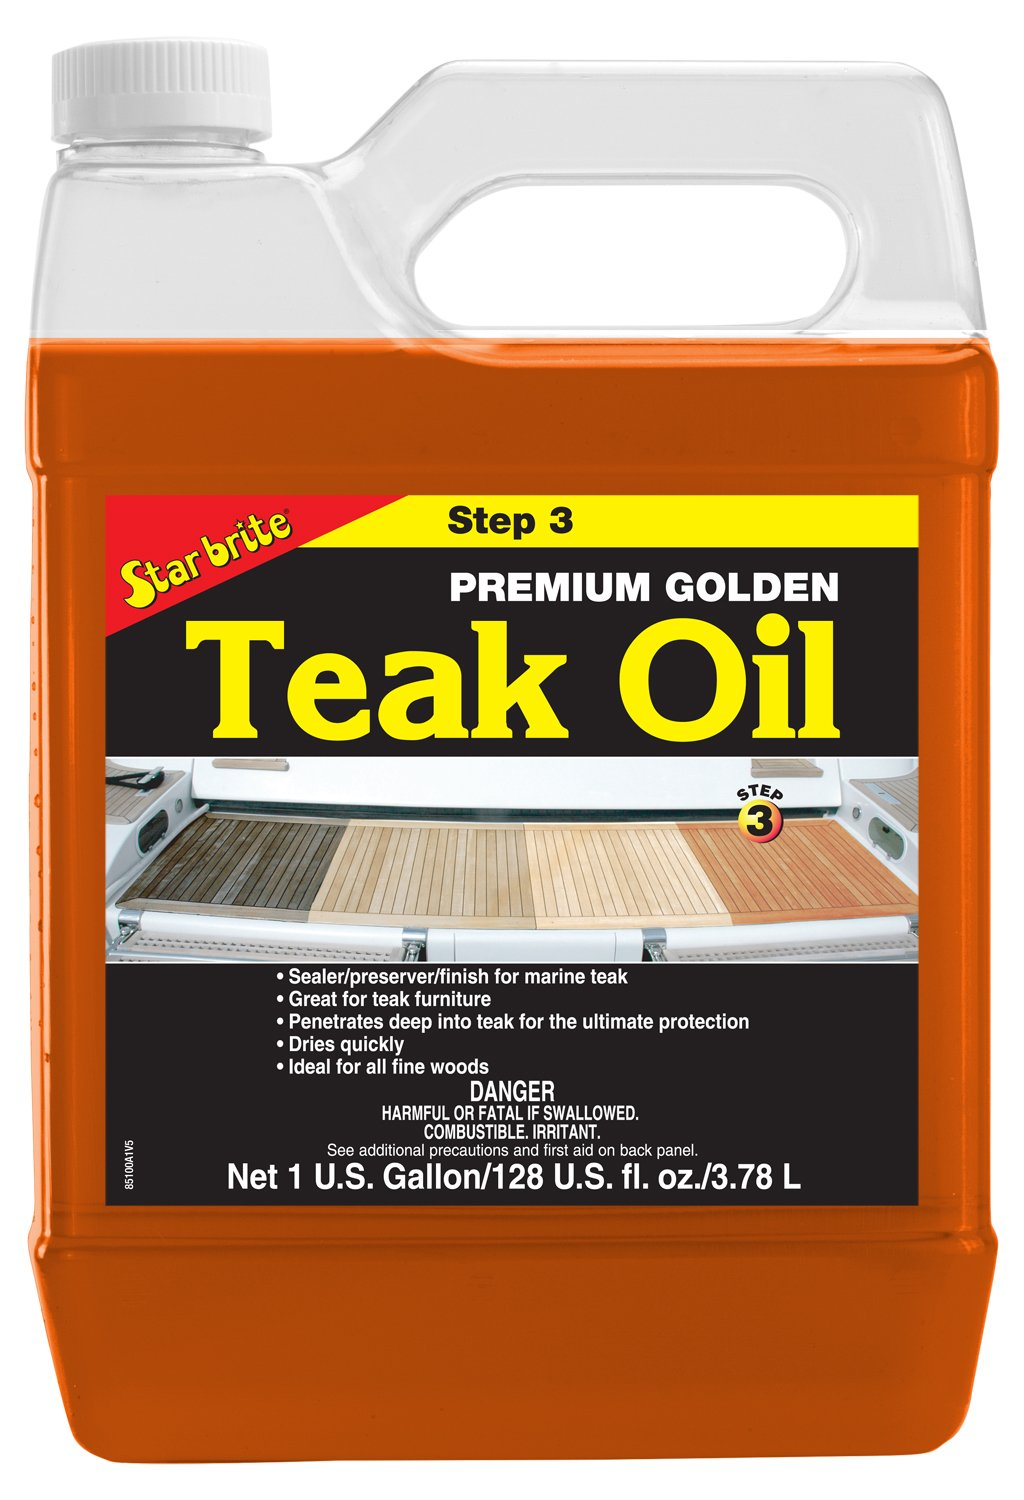 Star Brite Premium Golden Teak Oil - STEP 3-1 gal